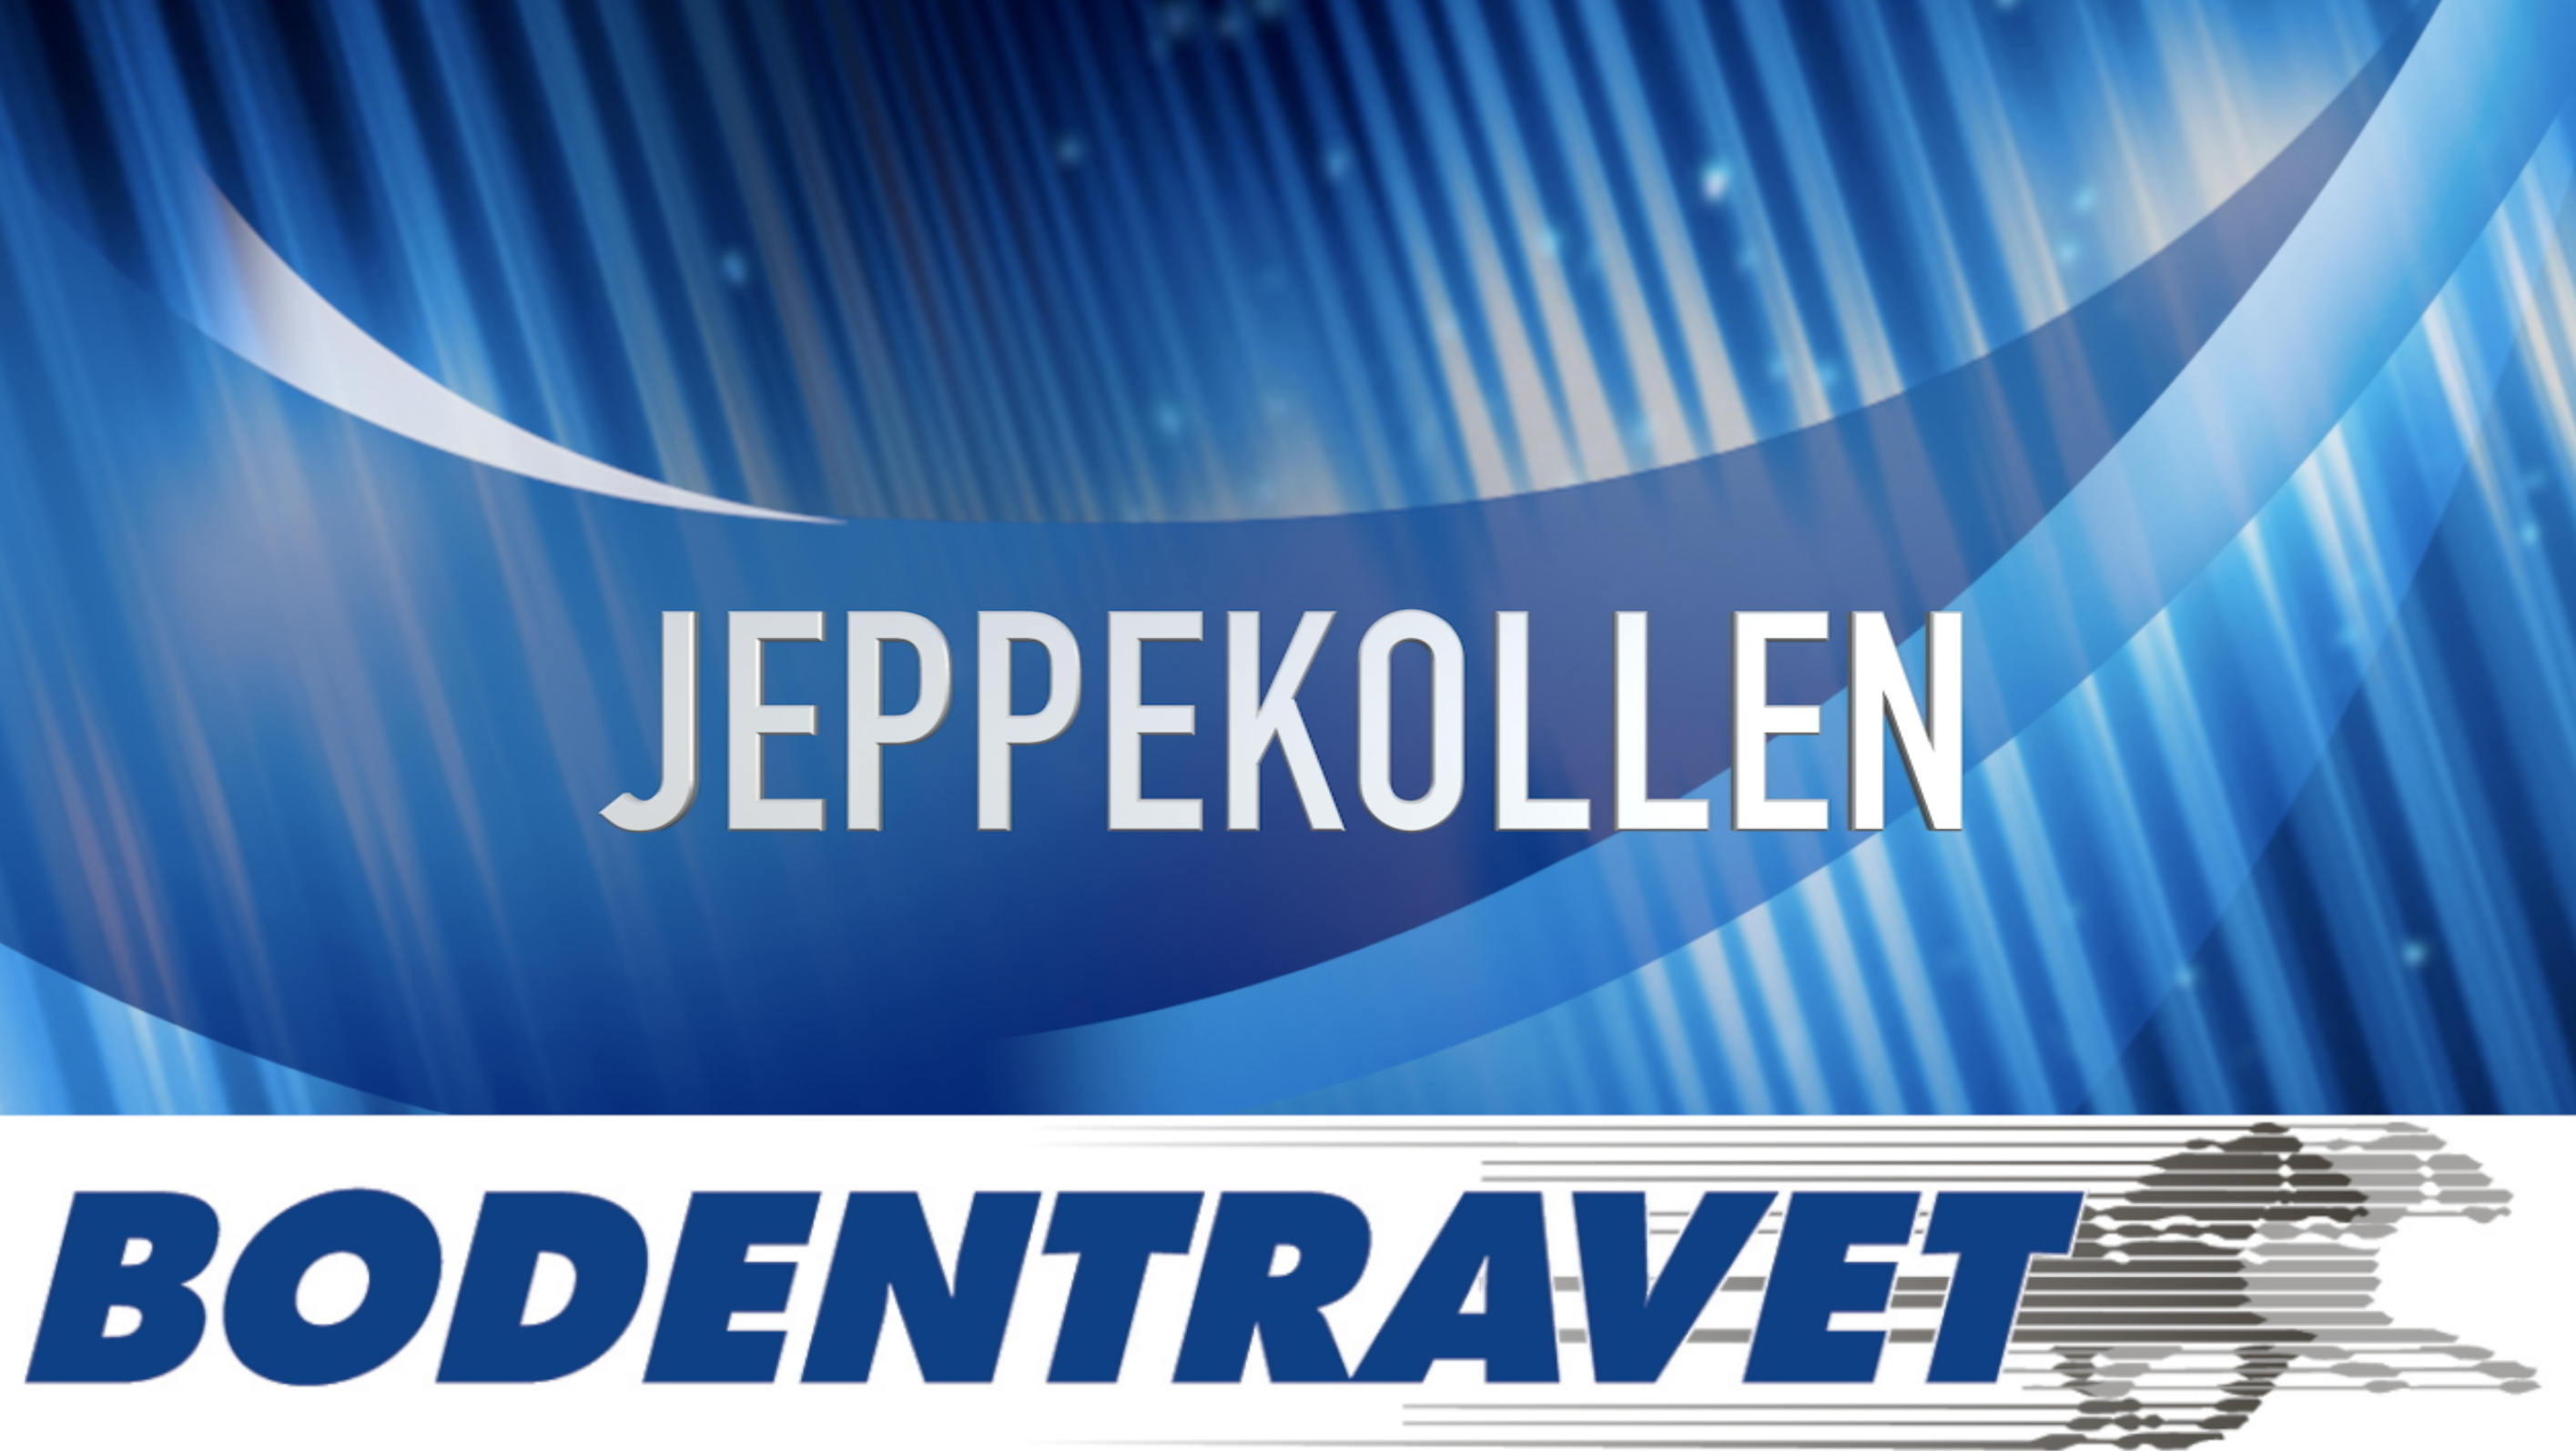 Jeppekollen 23 april